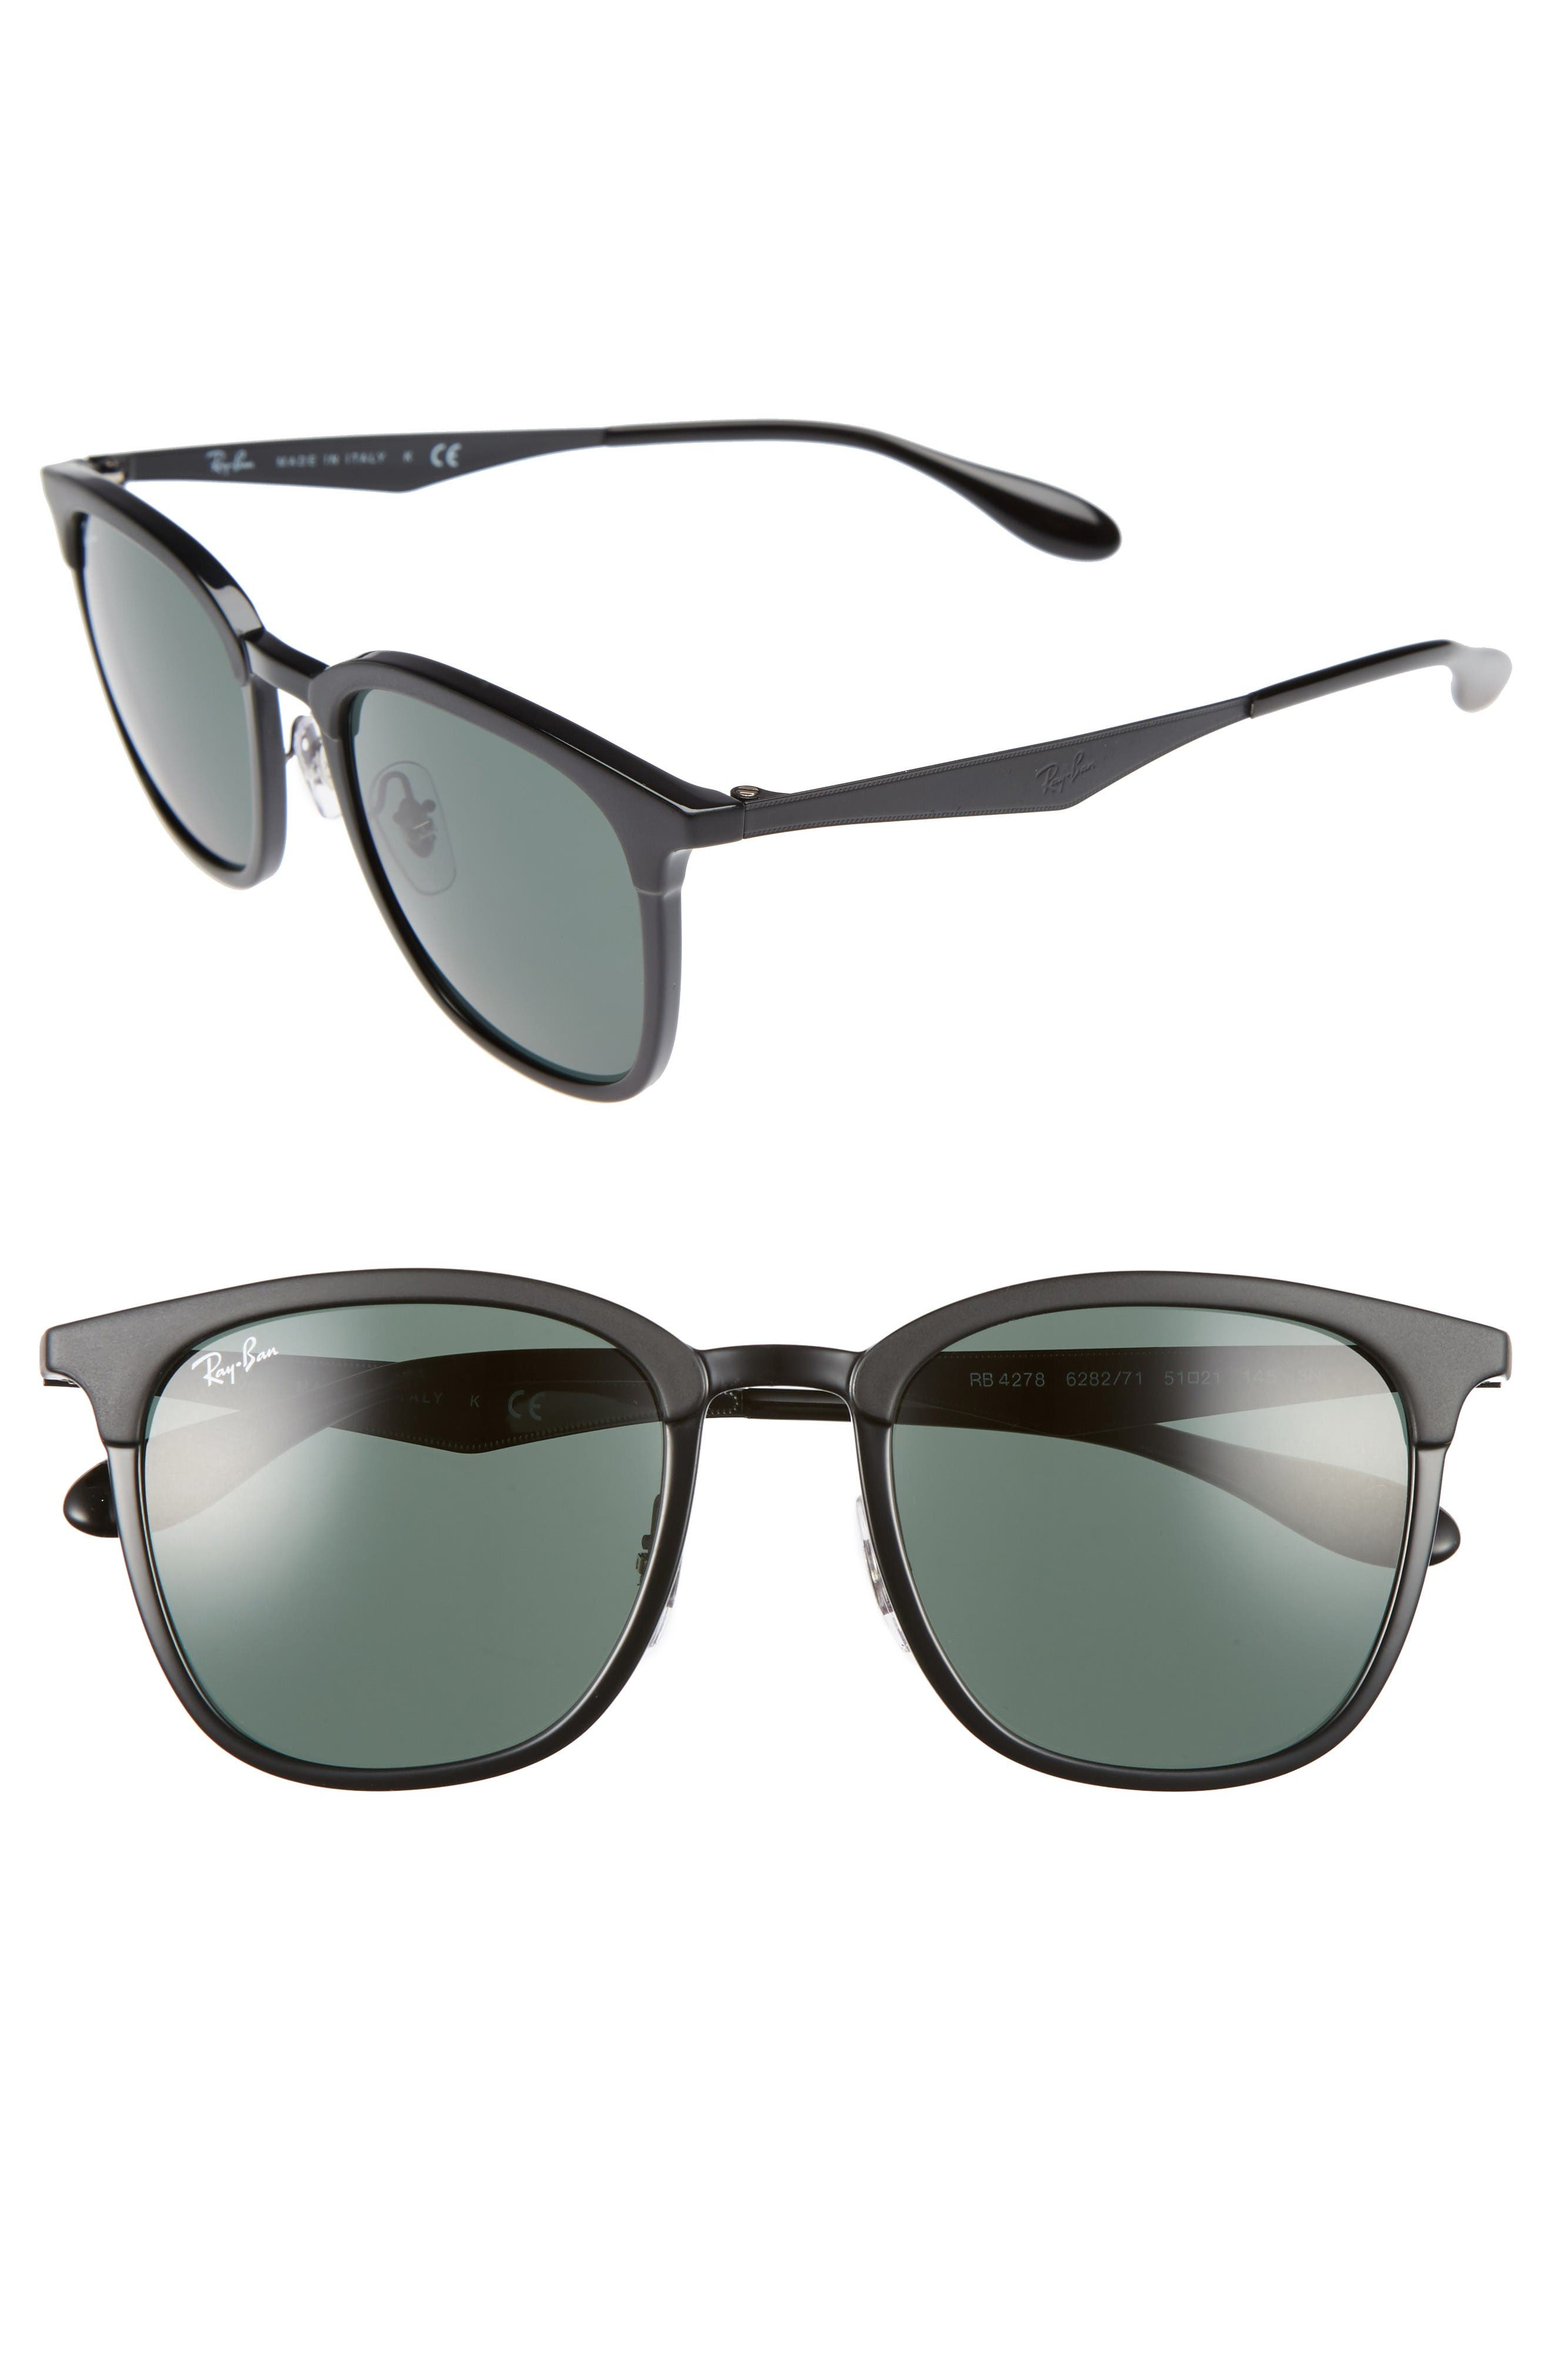 Ray-Ban Highstreet 51mm Square Sunglasses